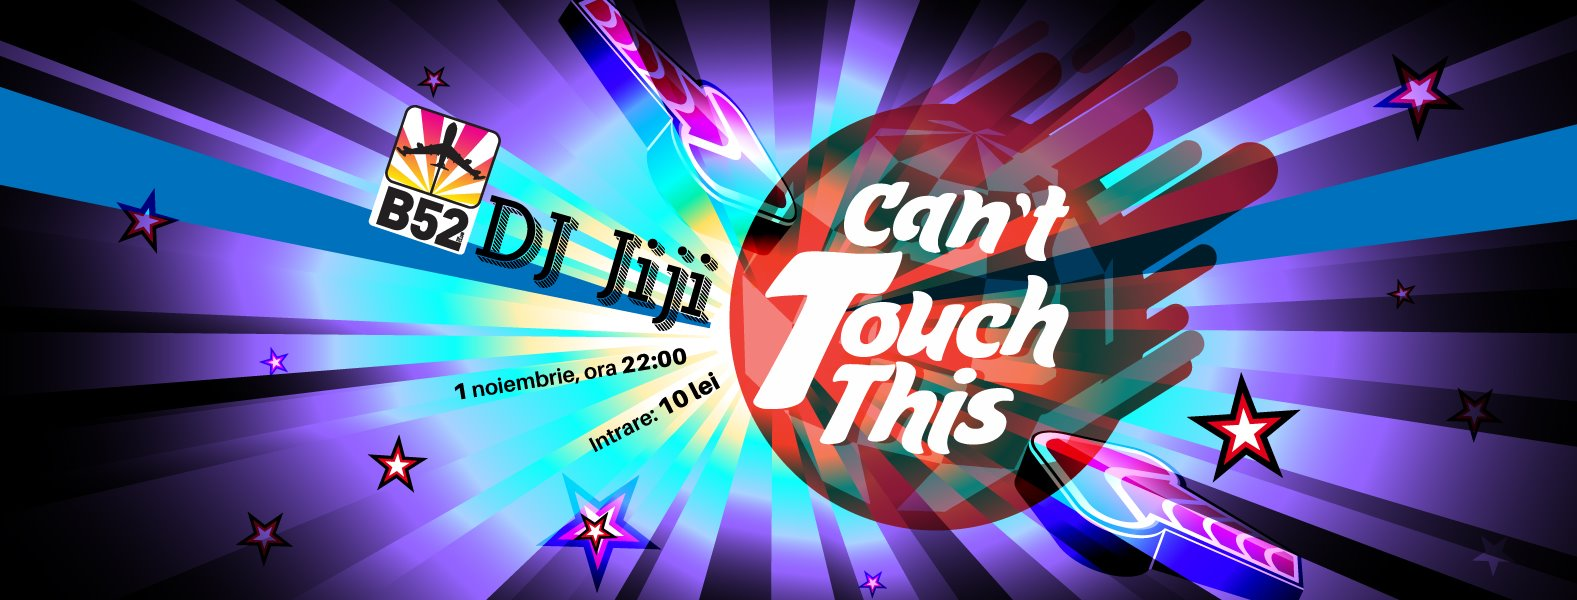 Cant Touch This cu Dj Jiji (80s - 90s Party)